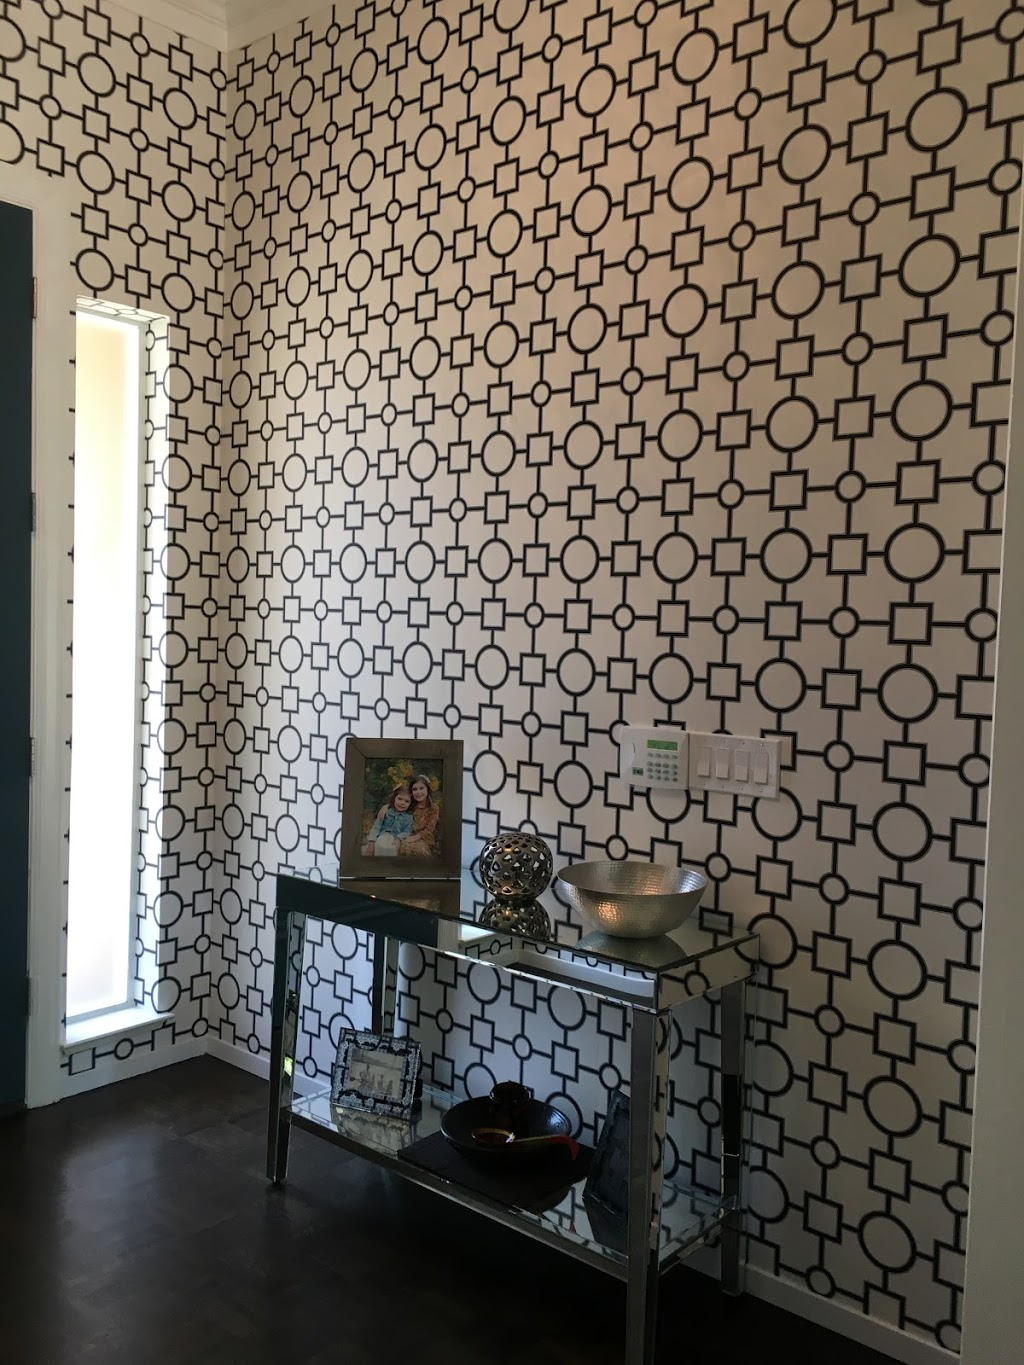 Gail Fishers Wallcovering - home goods store  | Photo 5 of 10 | Address: 1789 E Revere Rd, Fresno, CA 93720, USA | Phone: (559) 433-0727